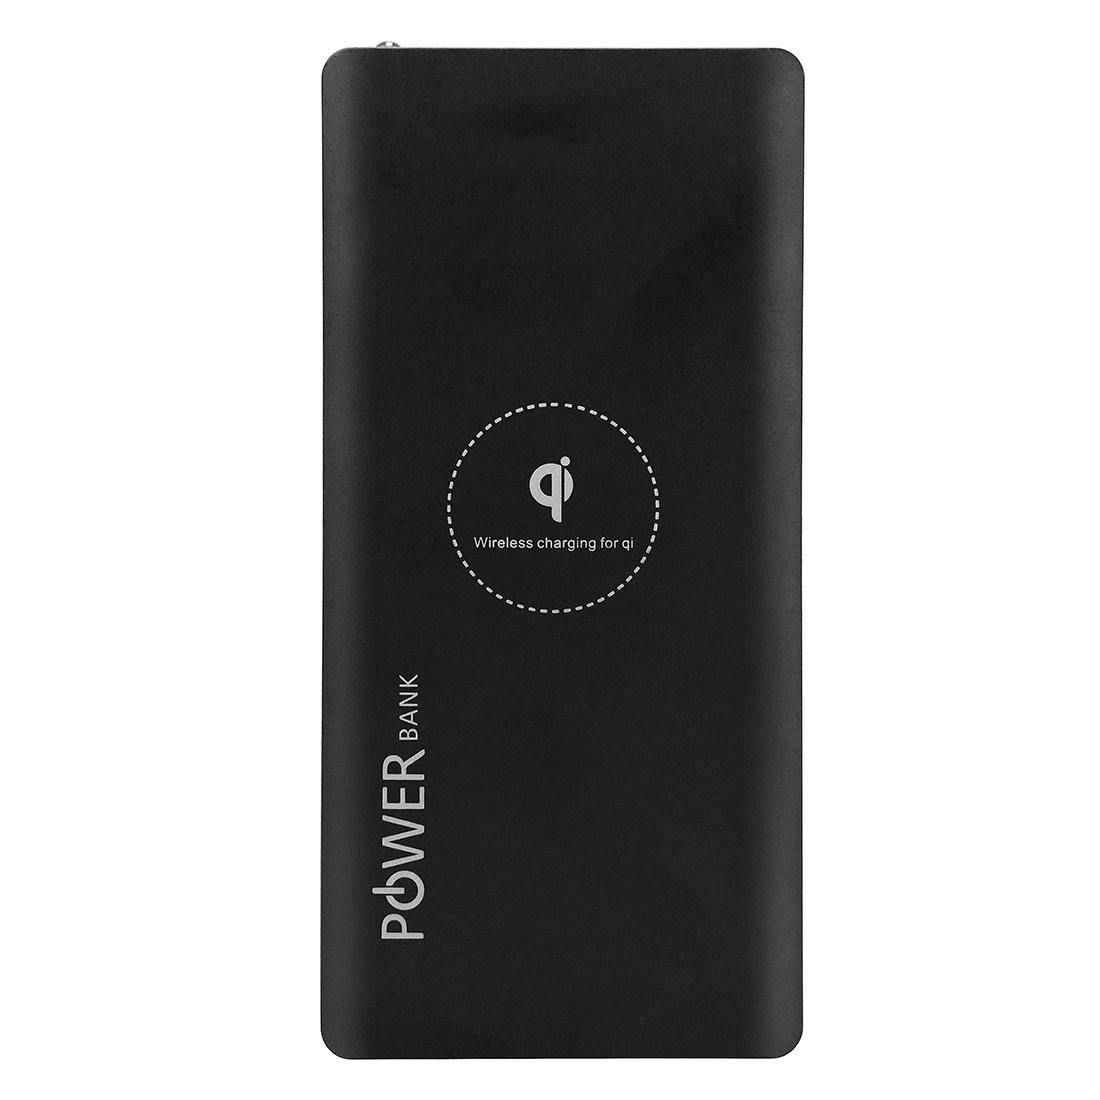 CHENSHENGYUE Wireless Charging Pad Wireless Charger Qi Standard 10000mAh Power Bank Black